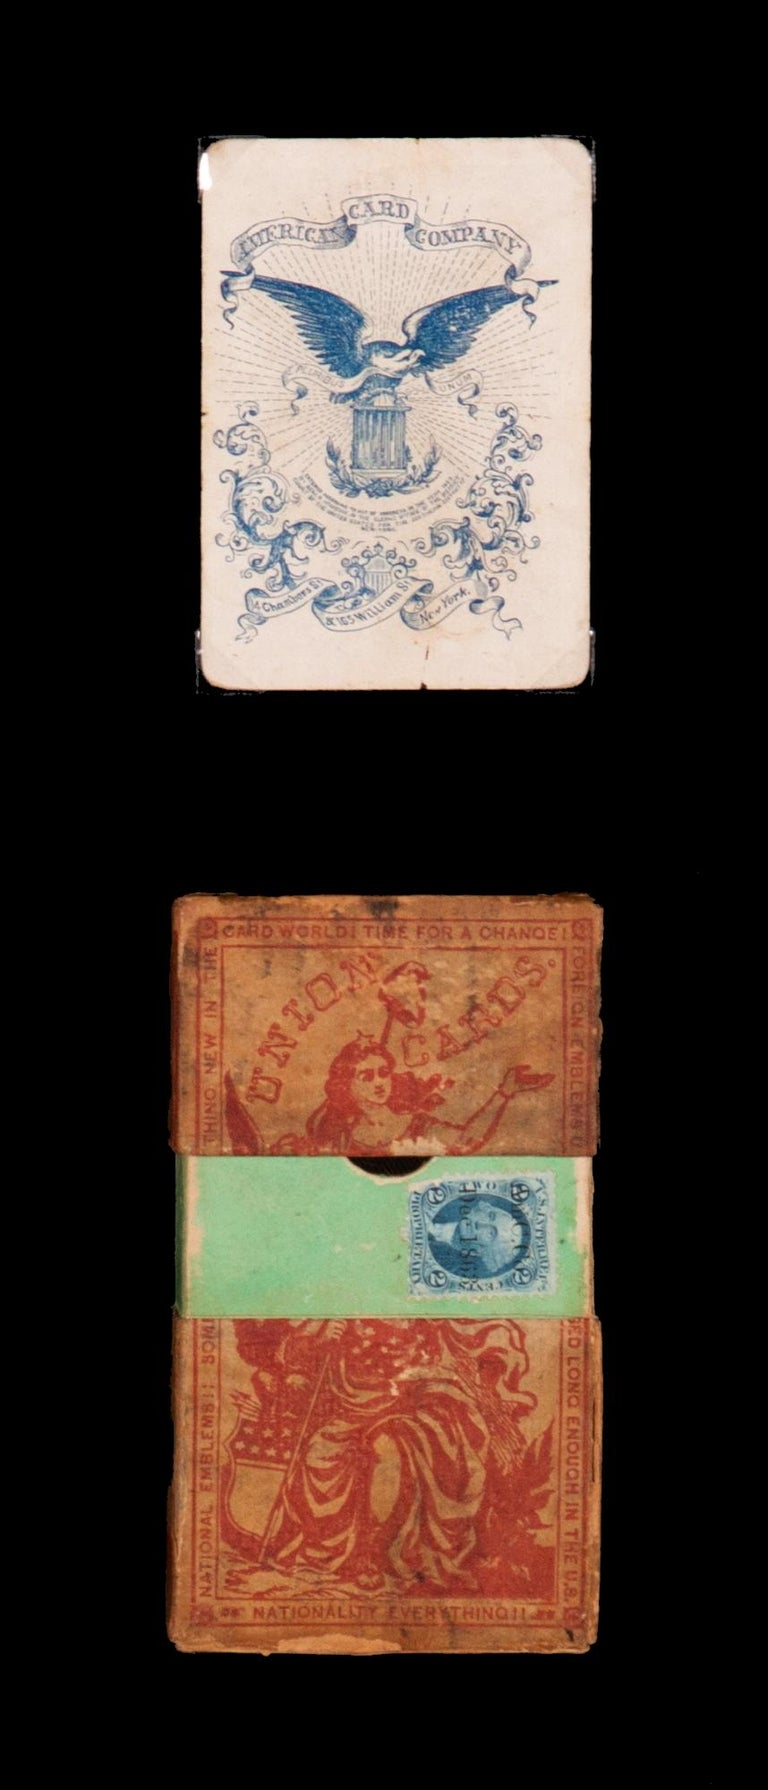 1862 Civil War playing cards with stars, flags, shields, & eagles, and face cards illustrating civil war officers and lady, Columbia, ca 1862, Benjamin Hitchcock, New York  1862 Civil War playing cards with suits represented by stars, flags,